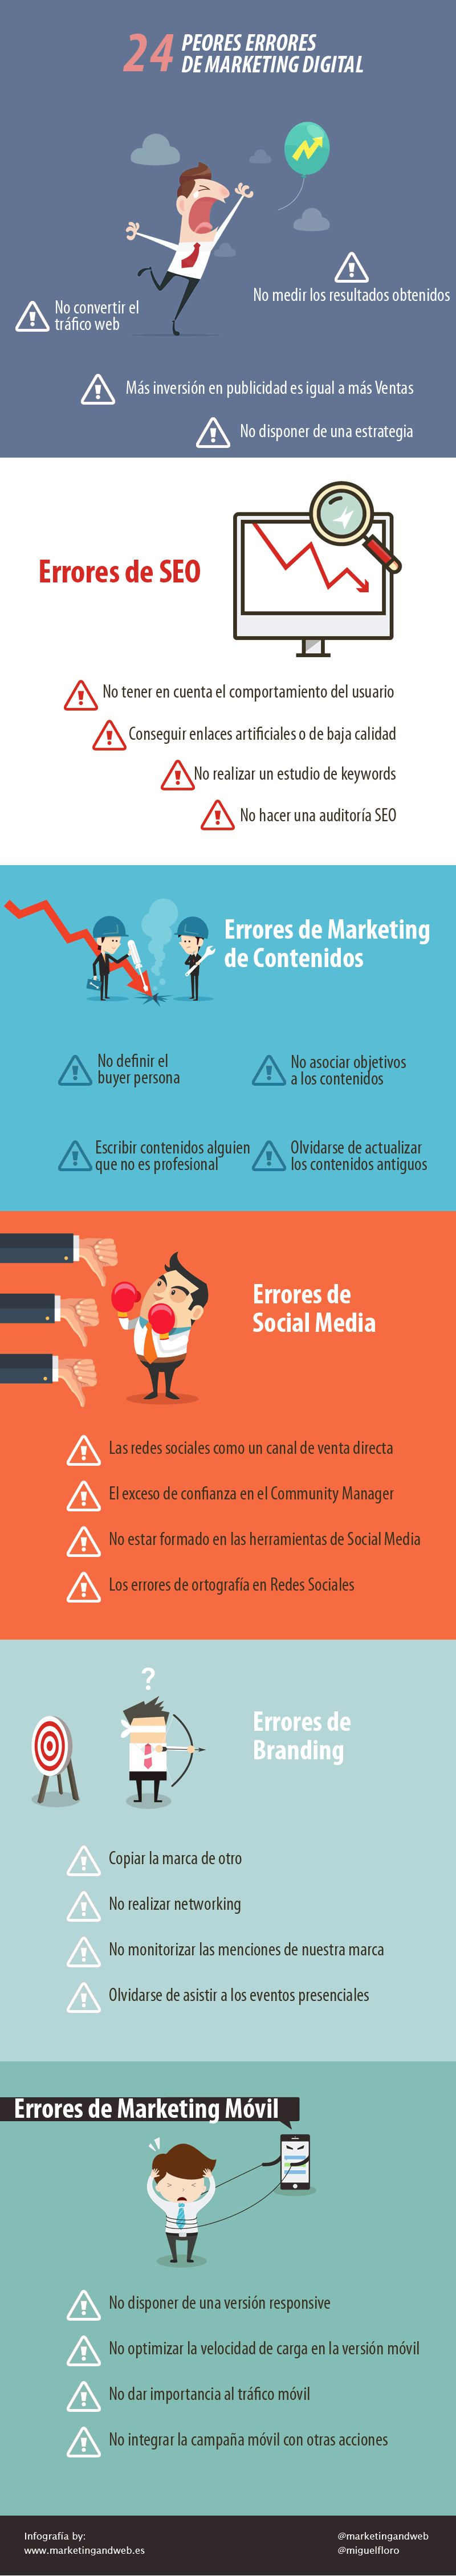 peores errores de marketing digital